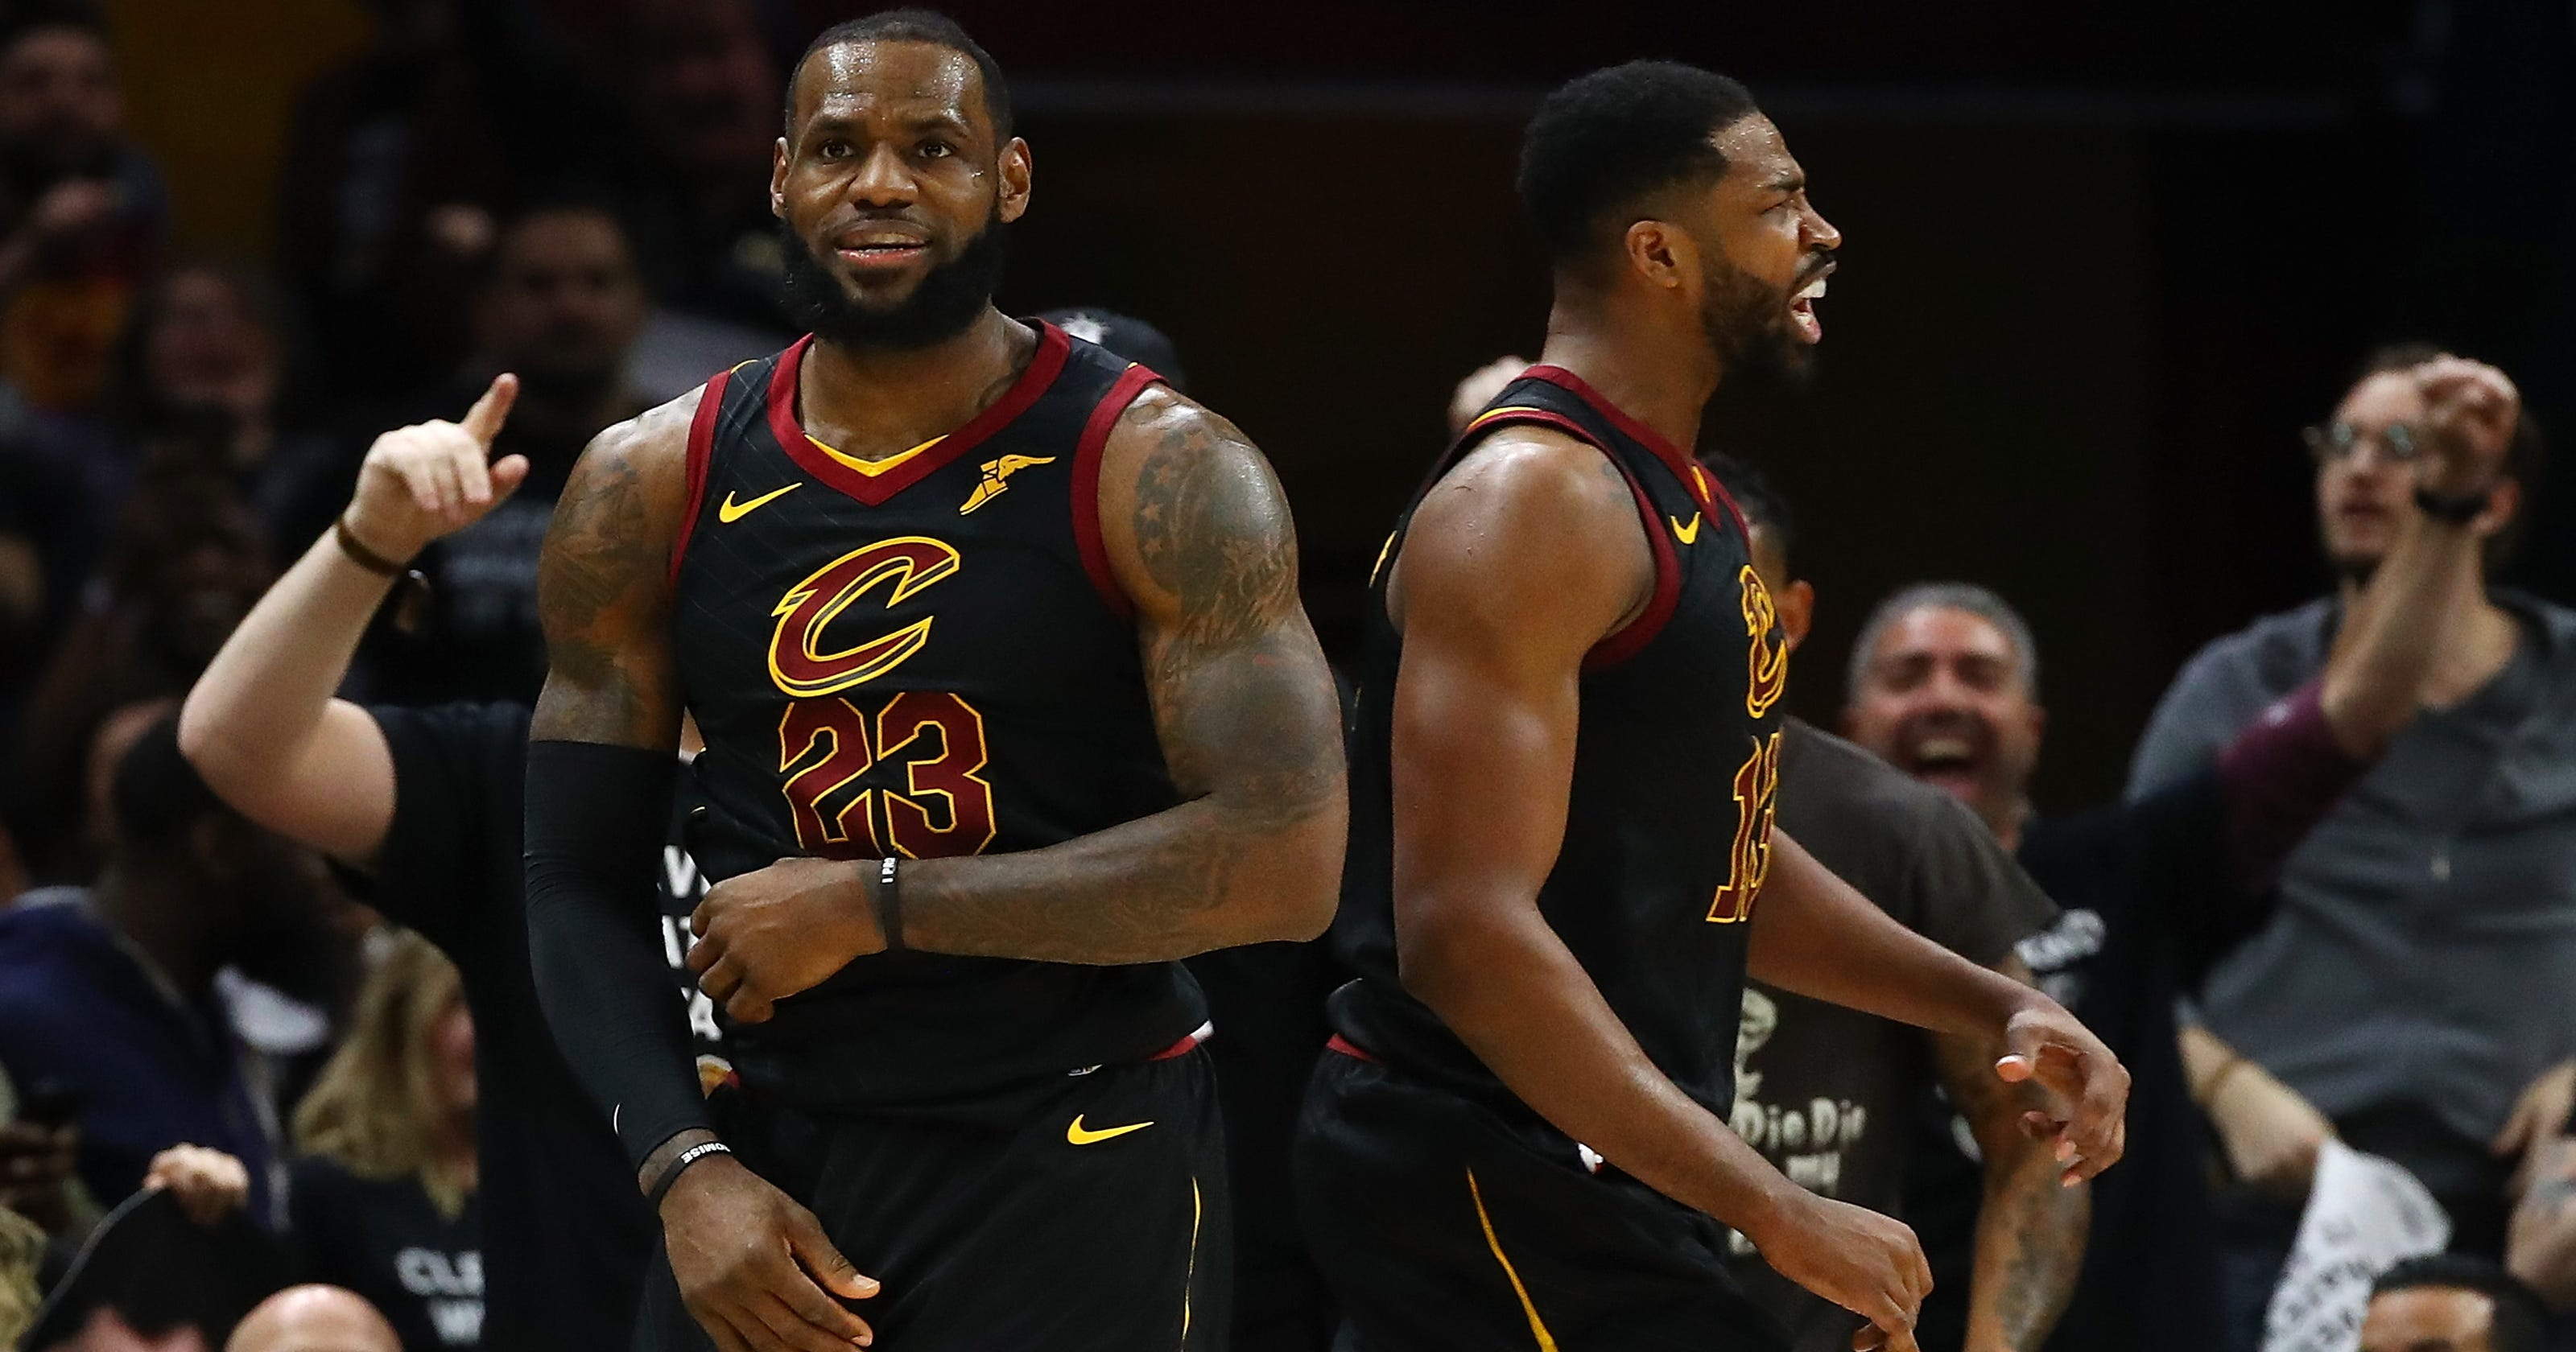 ff03371e22f Tristan Thompson and the Cavs' shrewd Game 7 decision that may have saved  their season